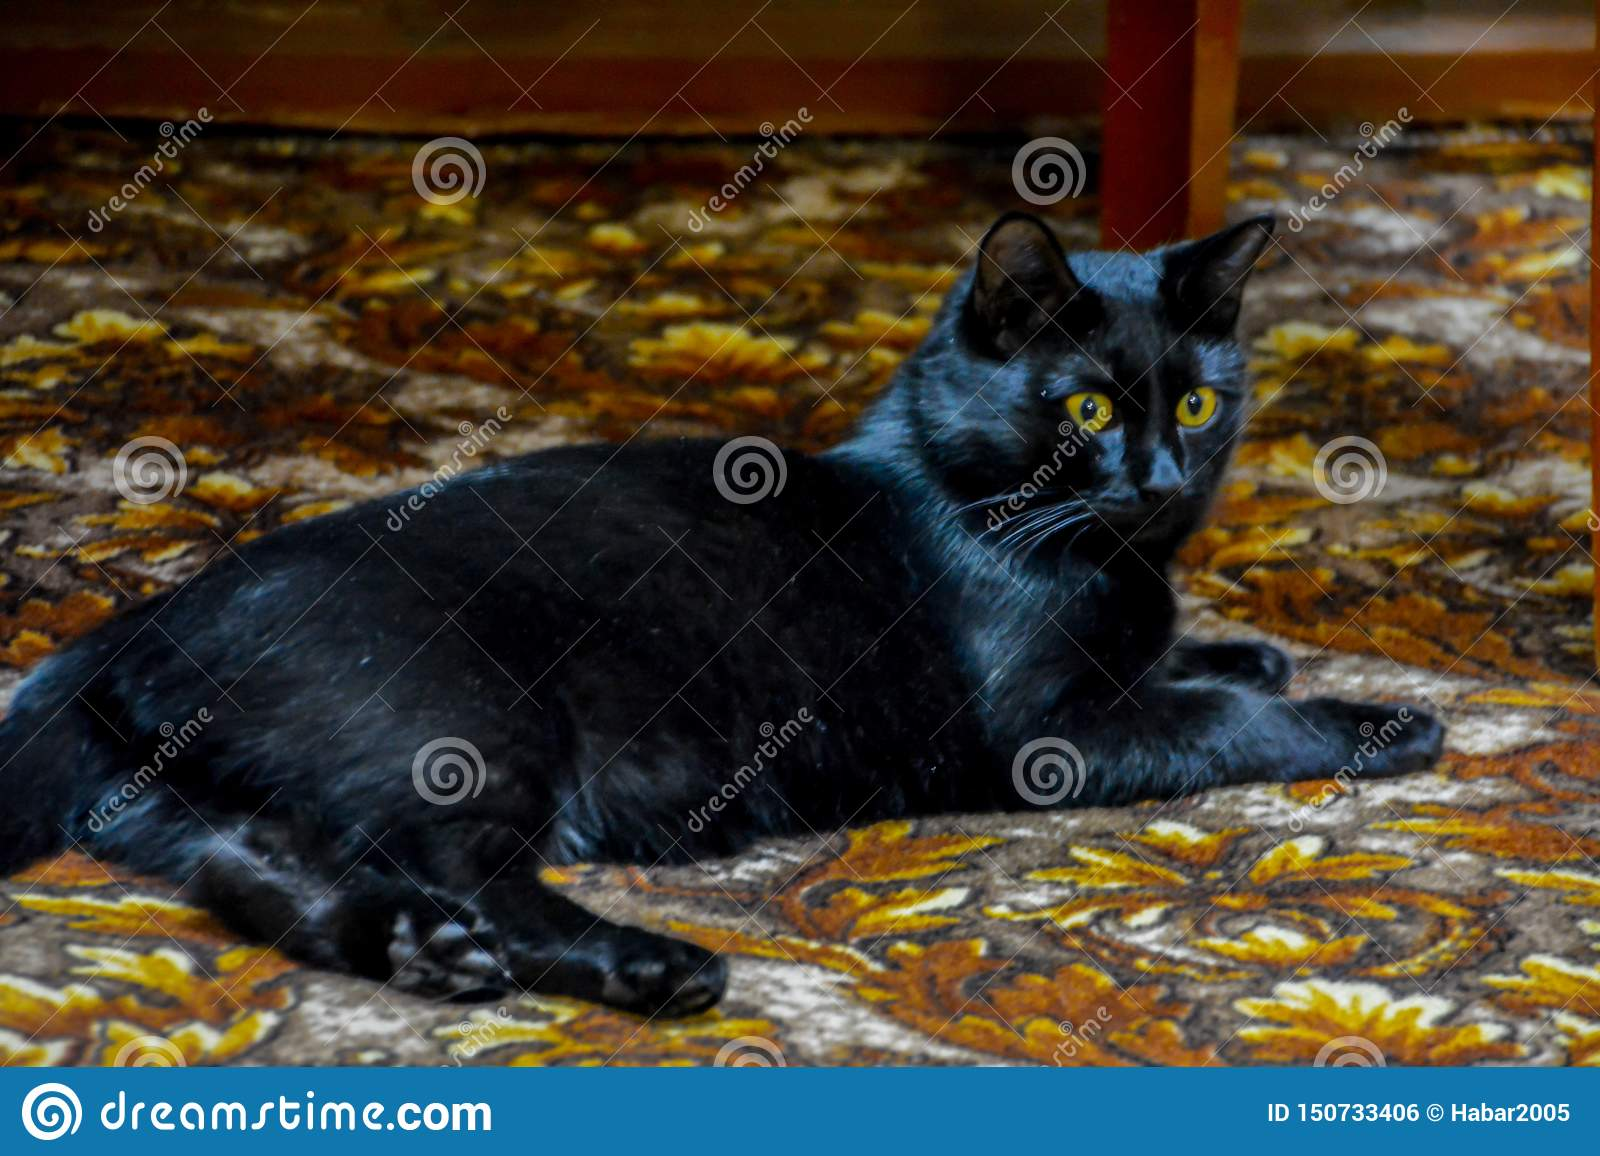 The black cat with yellow eyes lying on the carpet